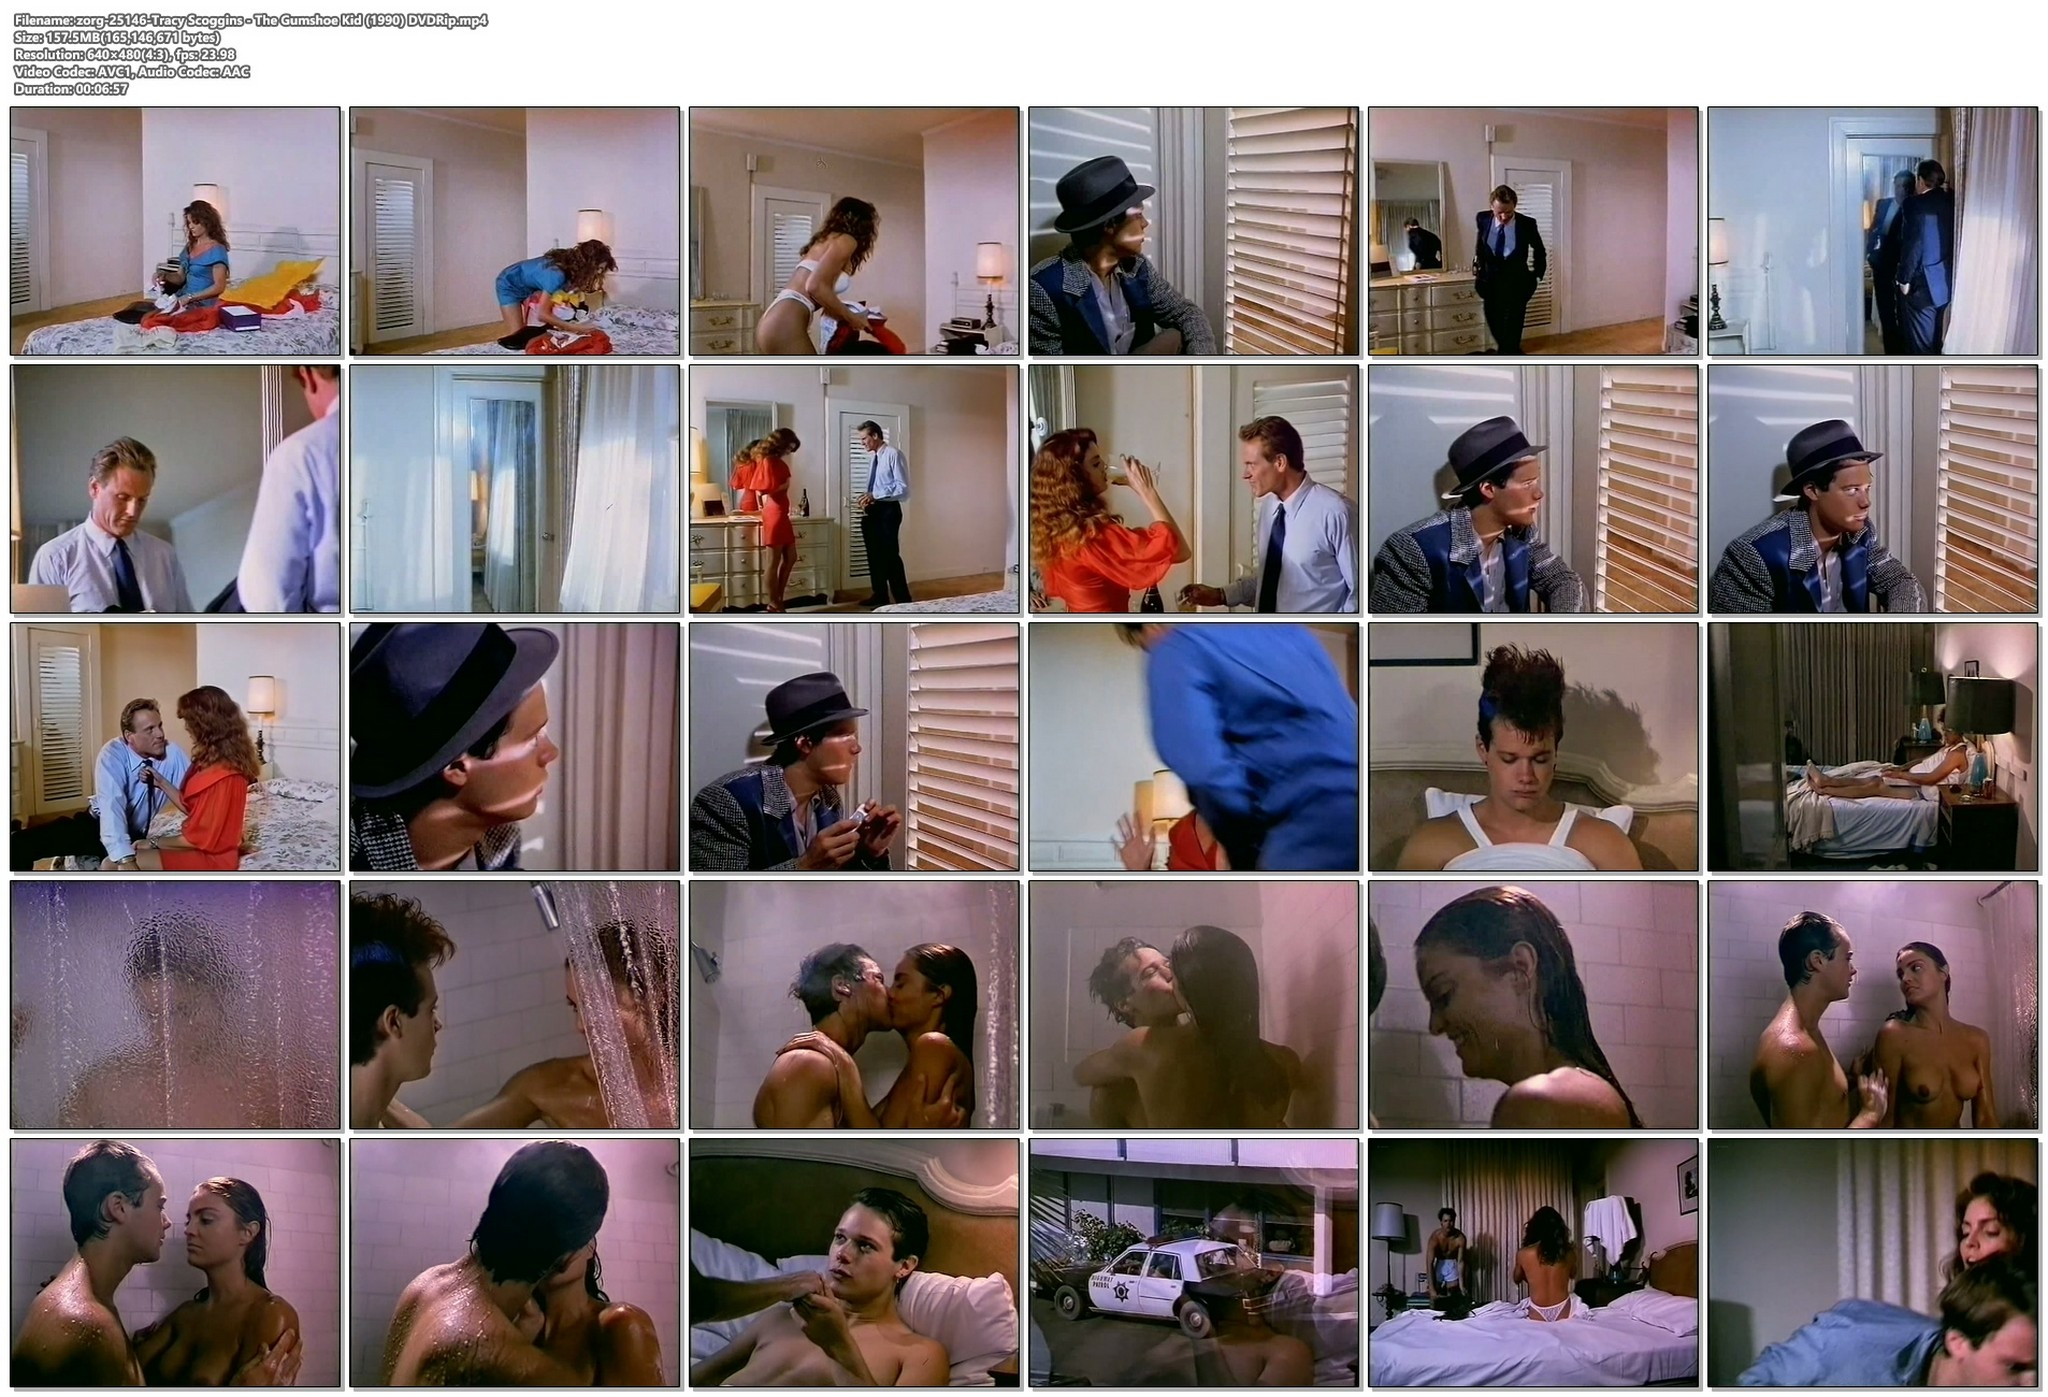 Tracy Scoggins nude in the shower The Gumshoe Kid 1990 DVDRip 14